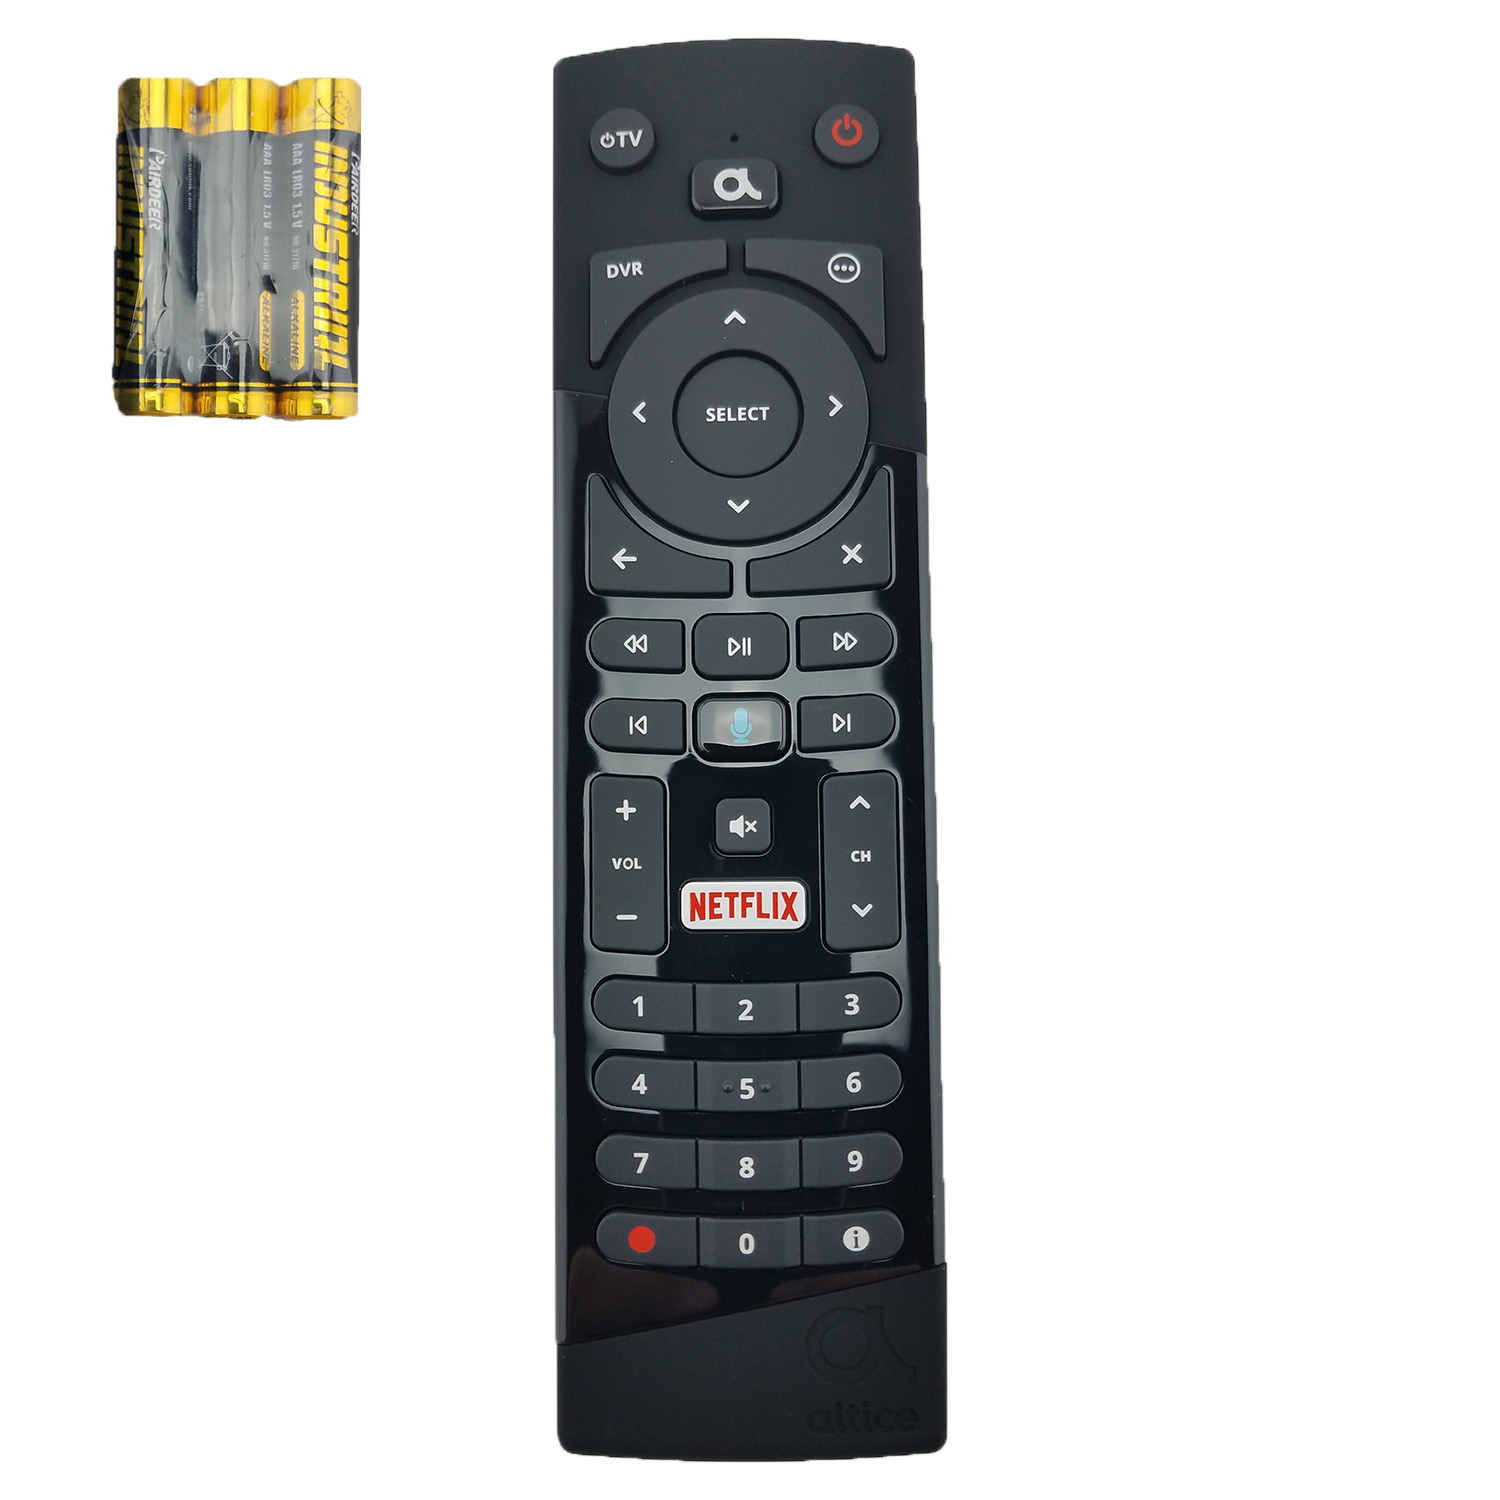 LATEST ALTICE OPTIMUM CABLEVISION BLUETOOTH REMOTE CONTROL